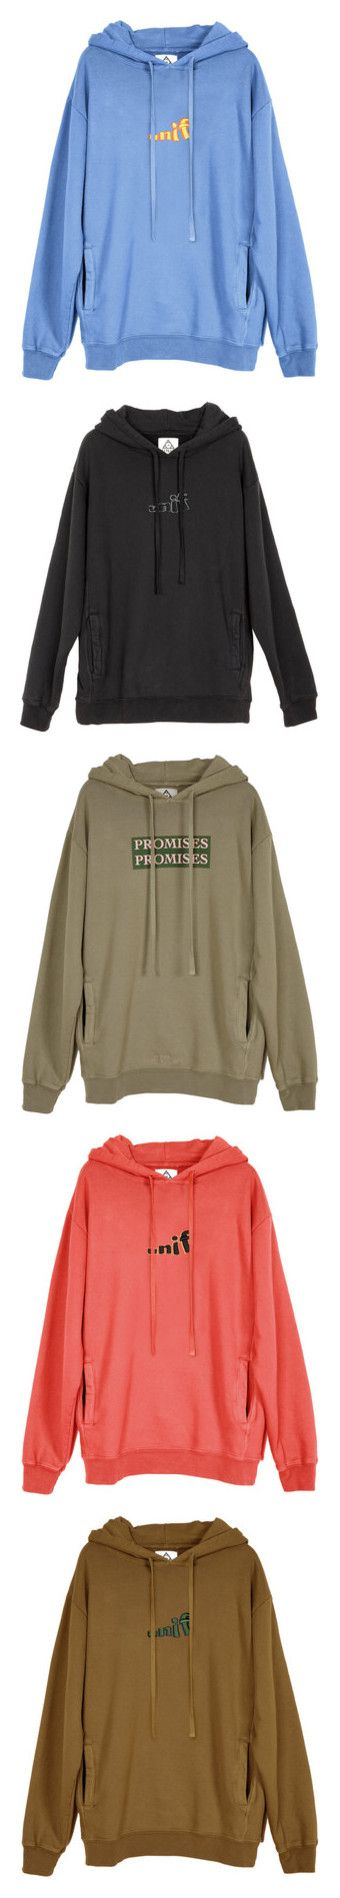 """""""UNIF Hoodies"""" by ericacavaco12 ❤ liked on Polyvore featuring tops, hoodies, sweaters, embroidered hooded sweatshirts, embroidered hoodie, embroidered hoodies, hoodie top, embroidered top, heavy hoodies and sweatshirt hoodies"""